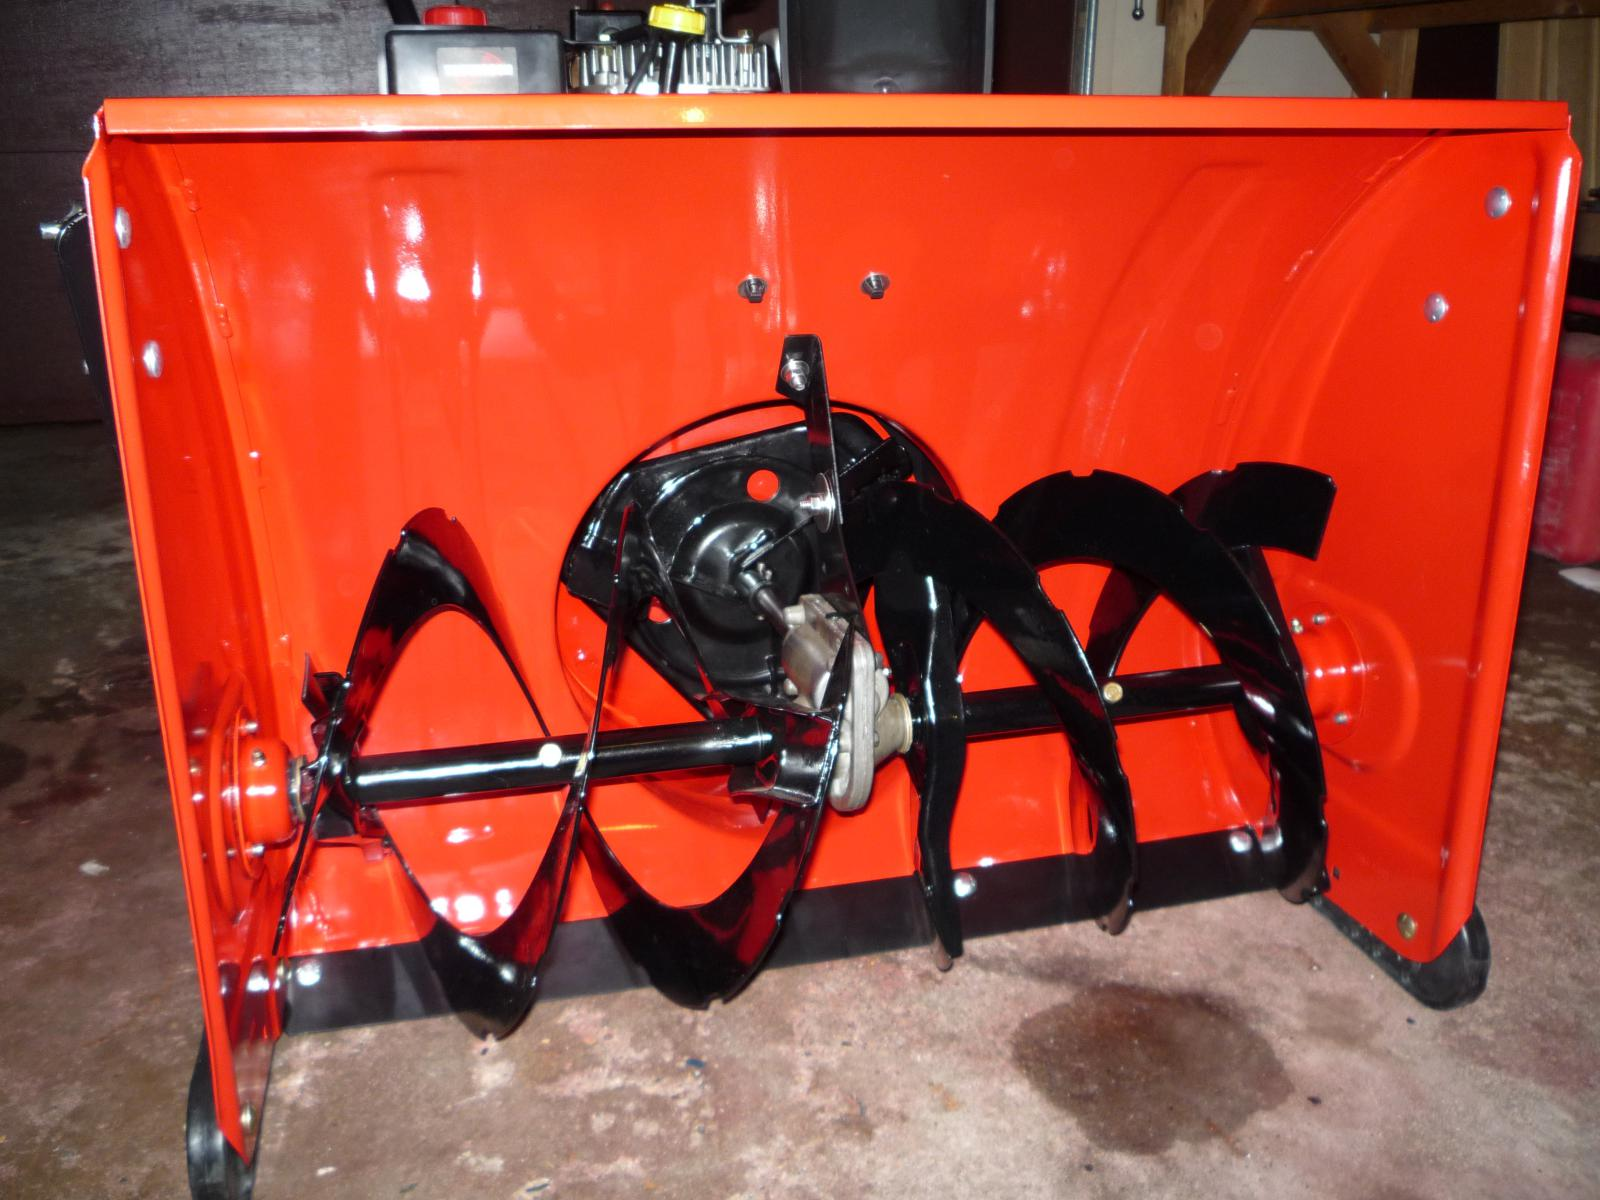 1999 vintage snowblower rebuilds-p1020761.jpg